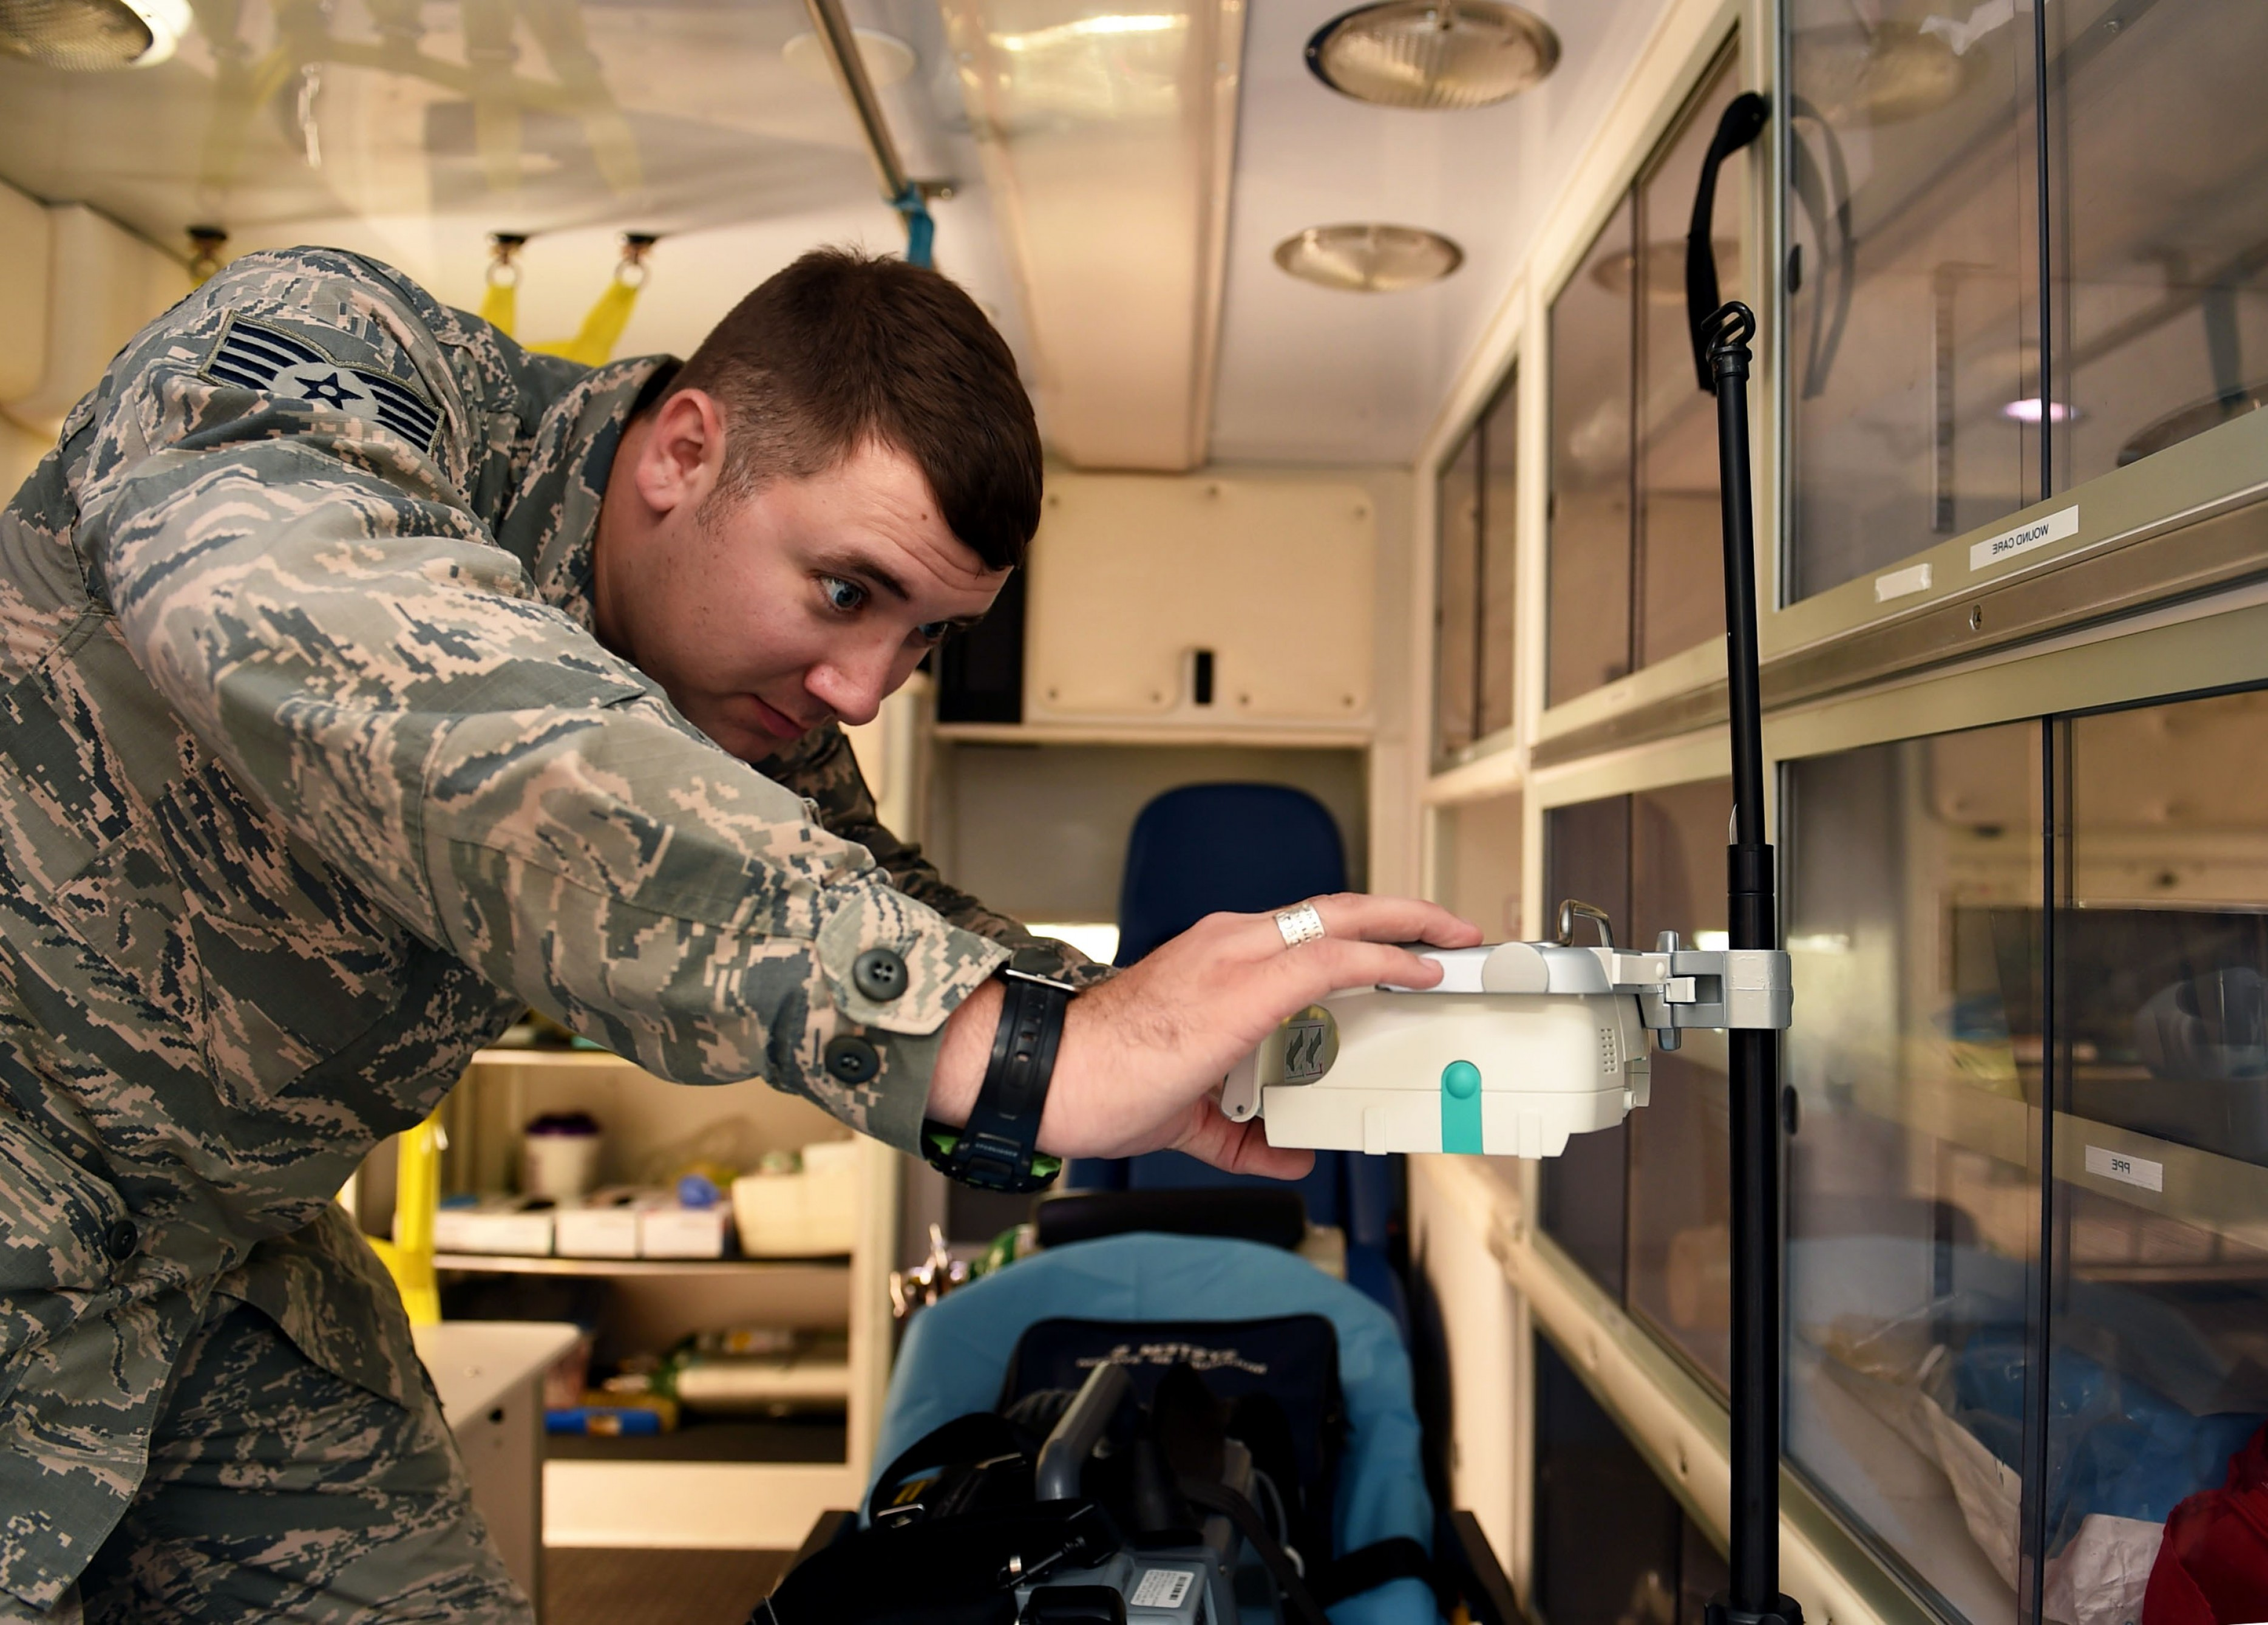 Afms Vector Check: Wilford Hall Ems First Afms Team To Use Infusion Pumps